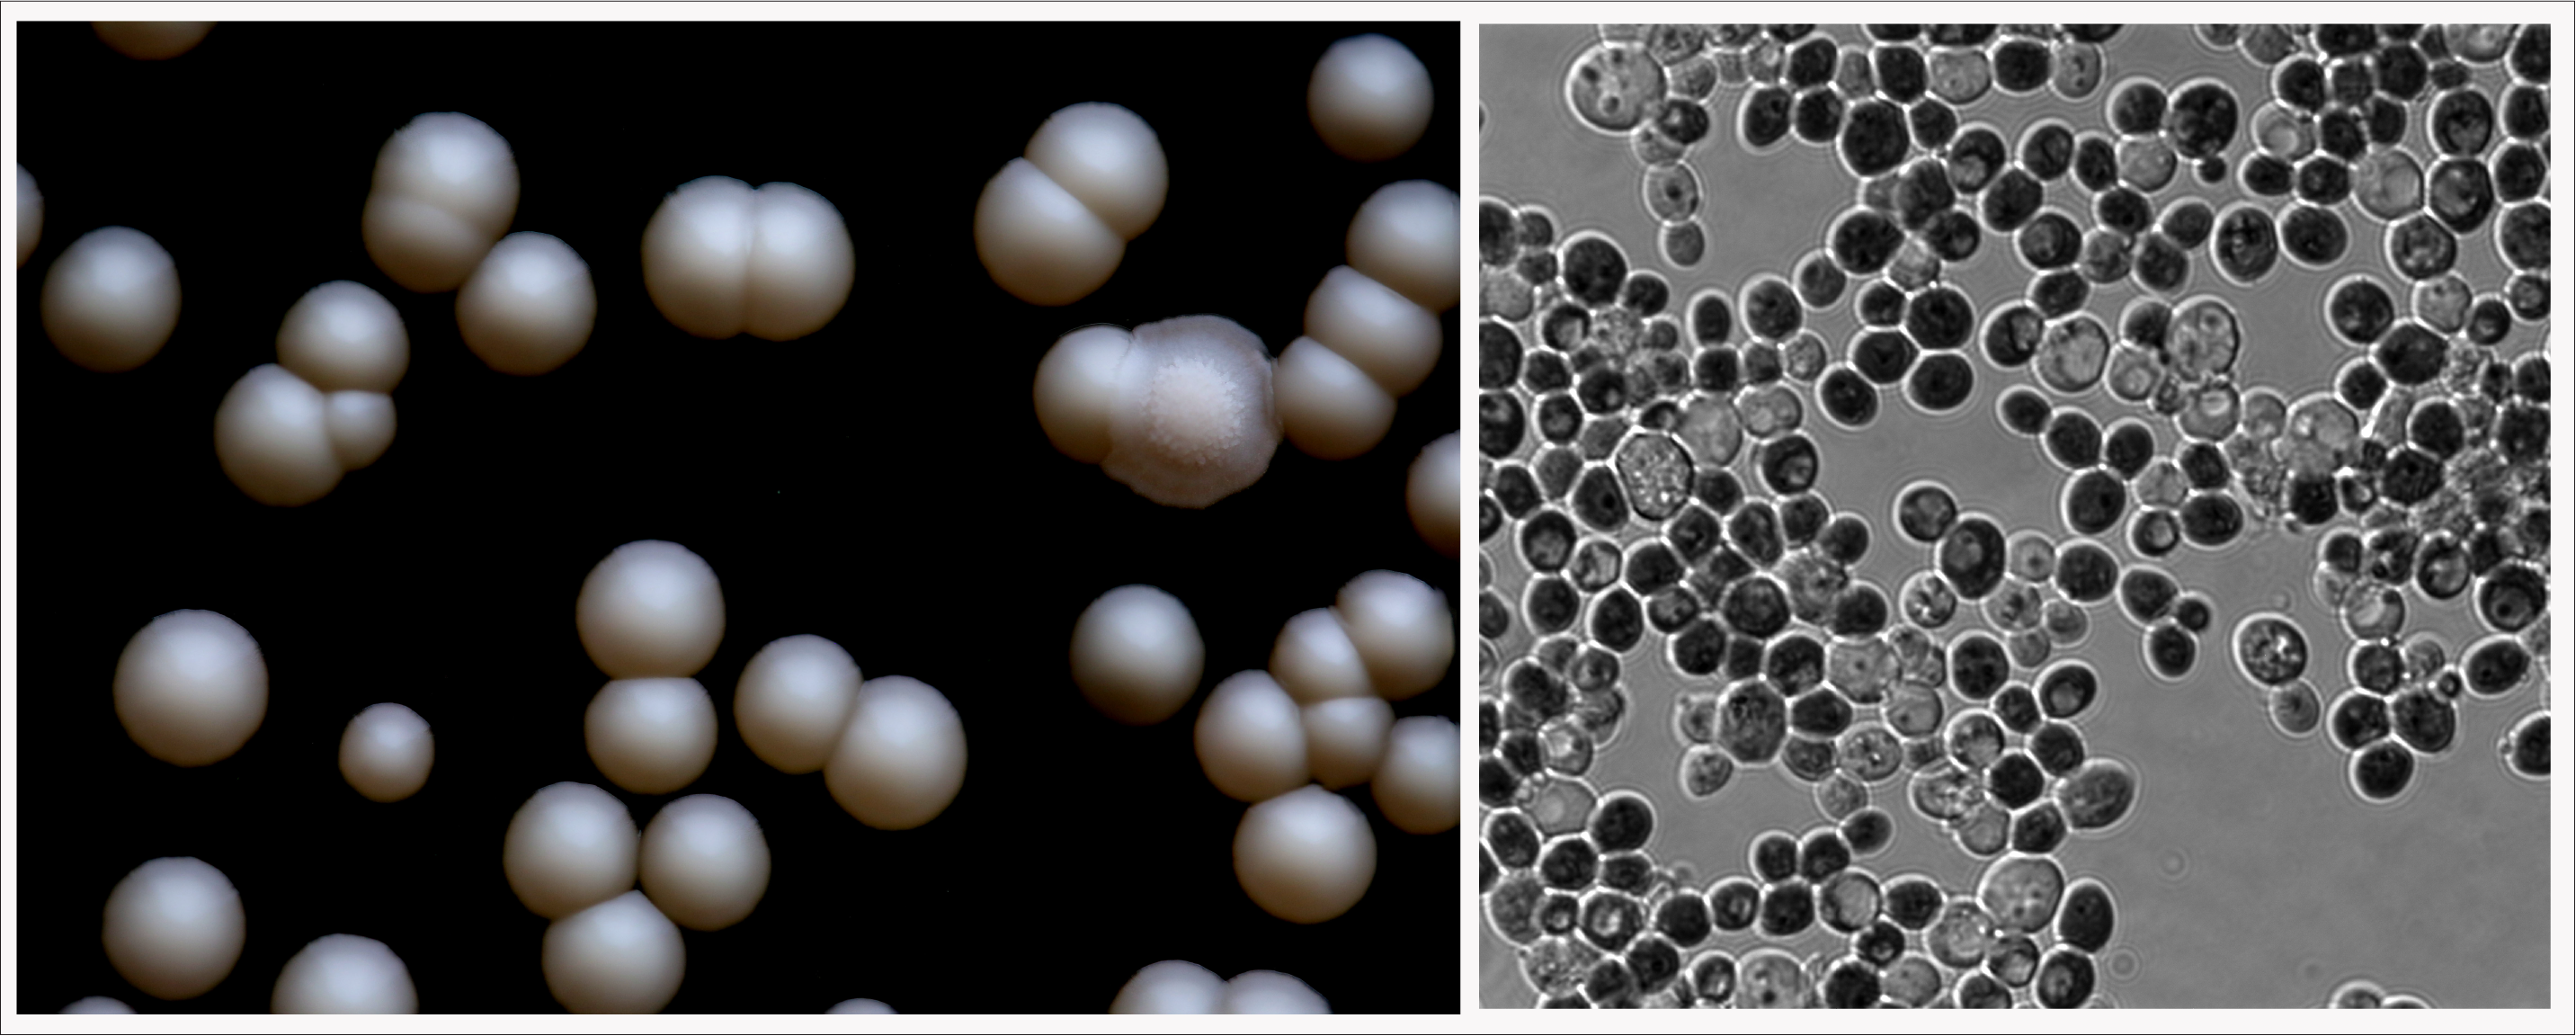 Left: K. unispora are the smooth, round colonies.  The colony with the fuzzy center is Wickerhamomyces anomalus.  Right: K. Unispora cells at magnification.